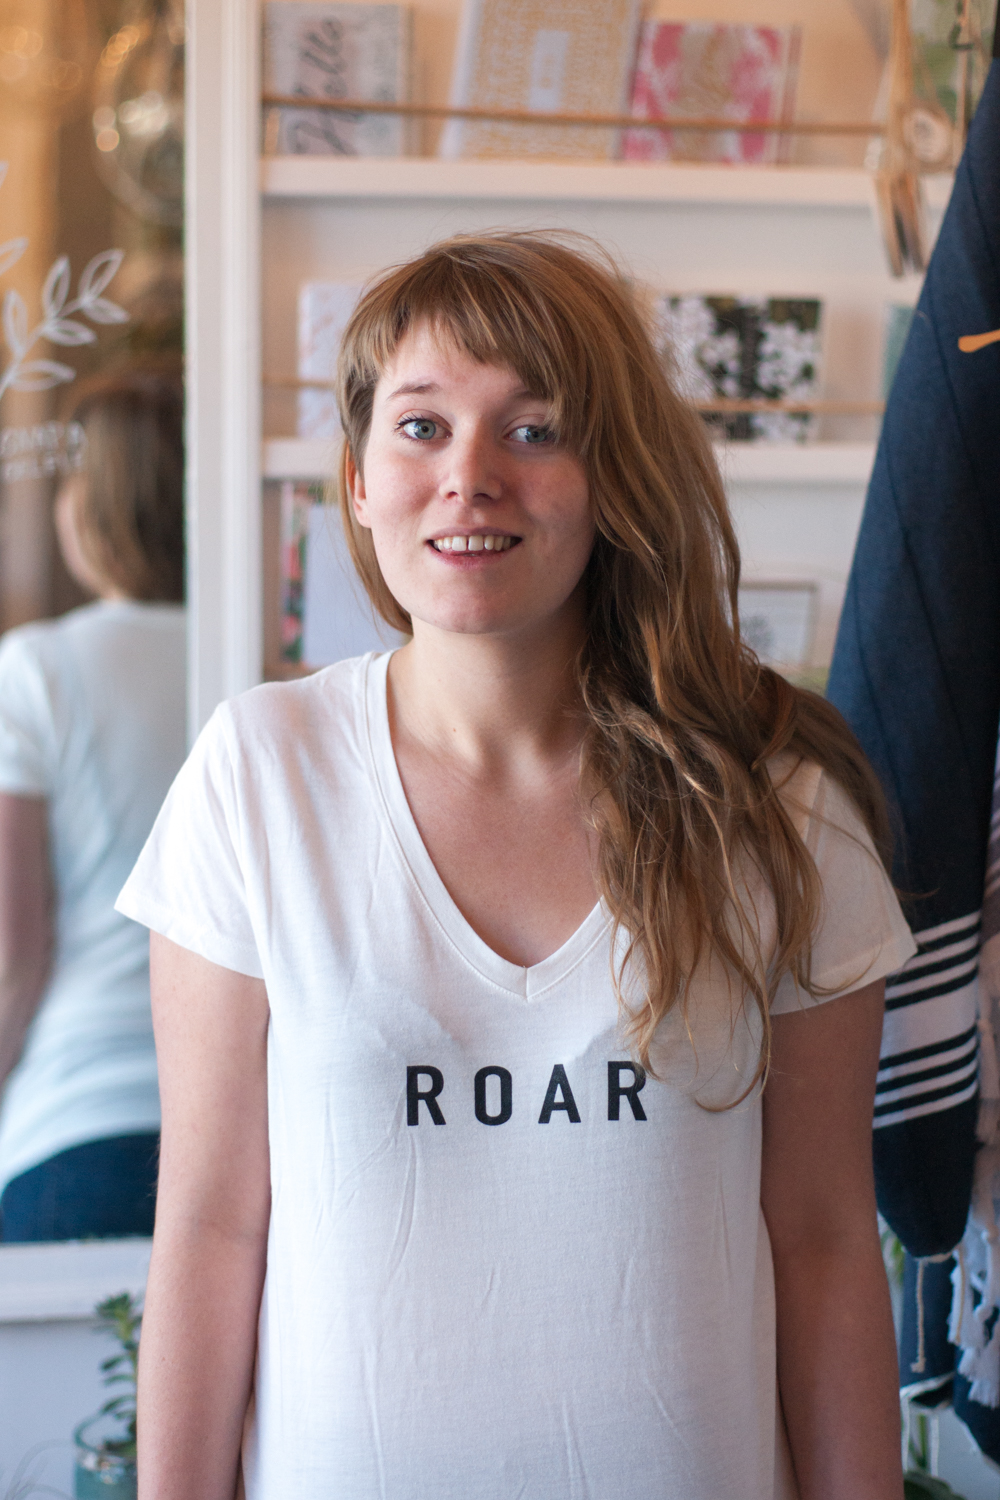 Roar Feminist Shirt | Gather Goods Co